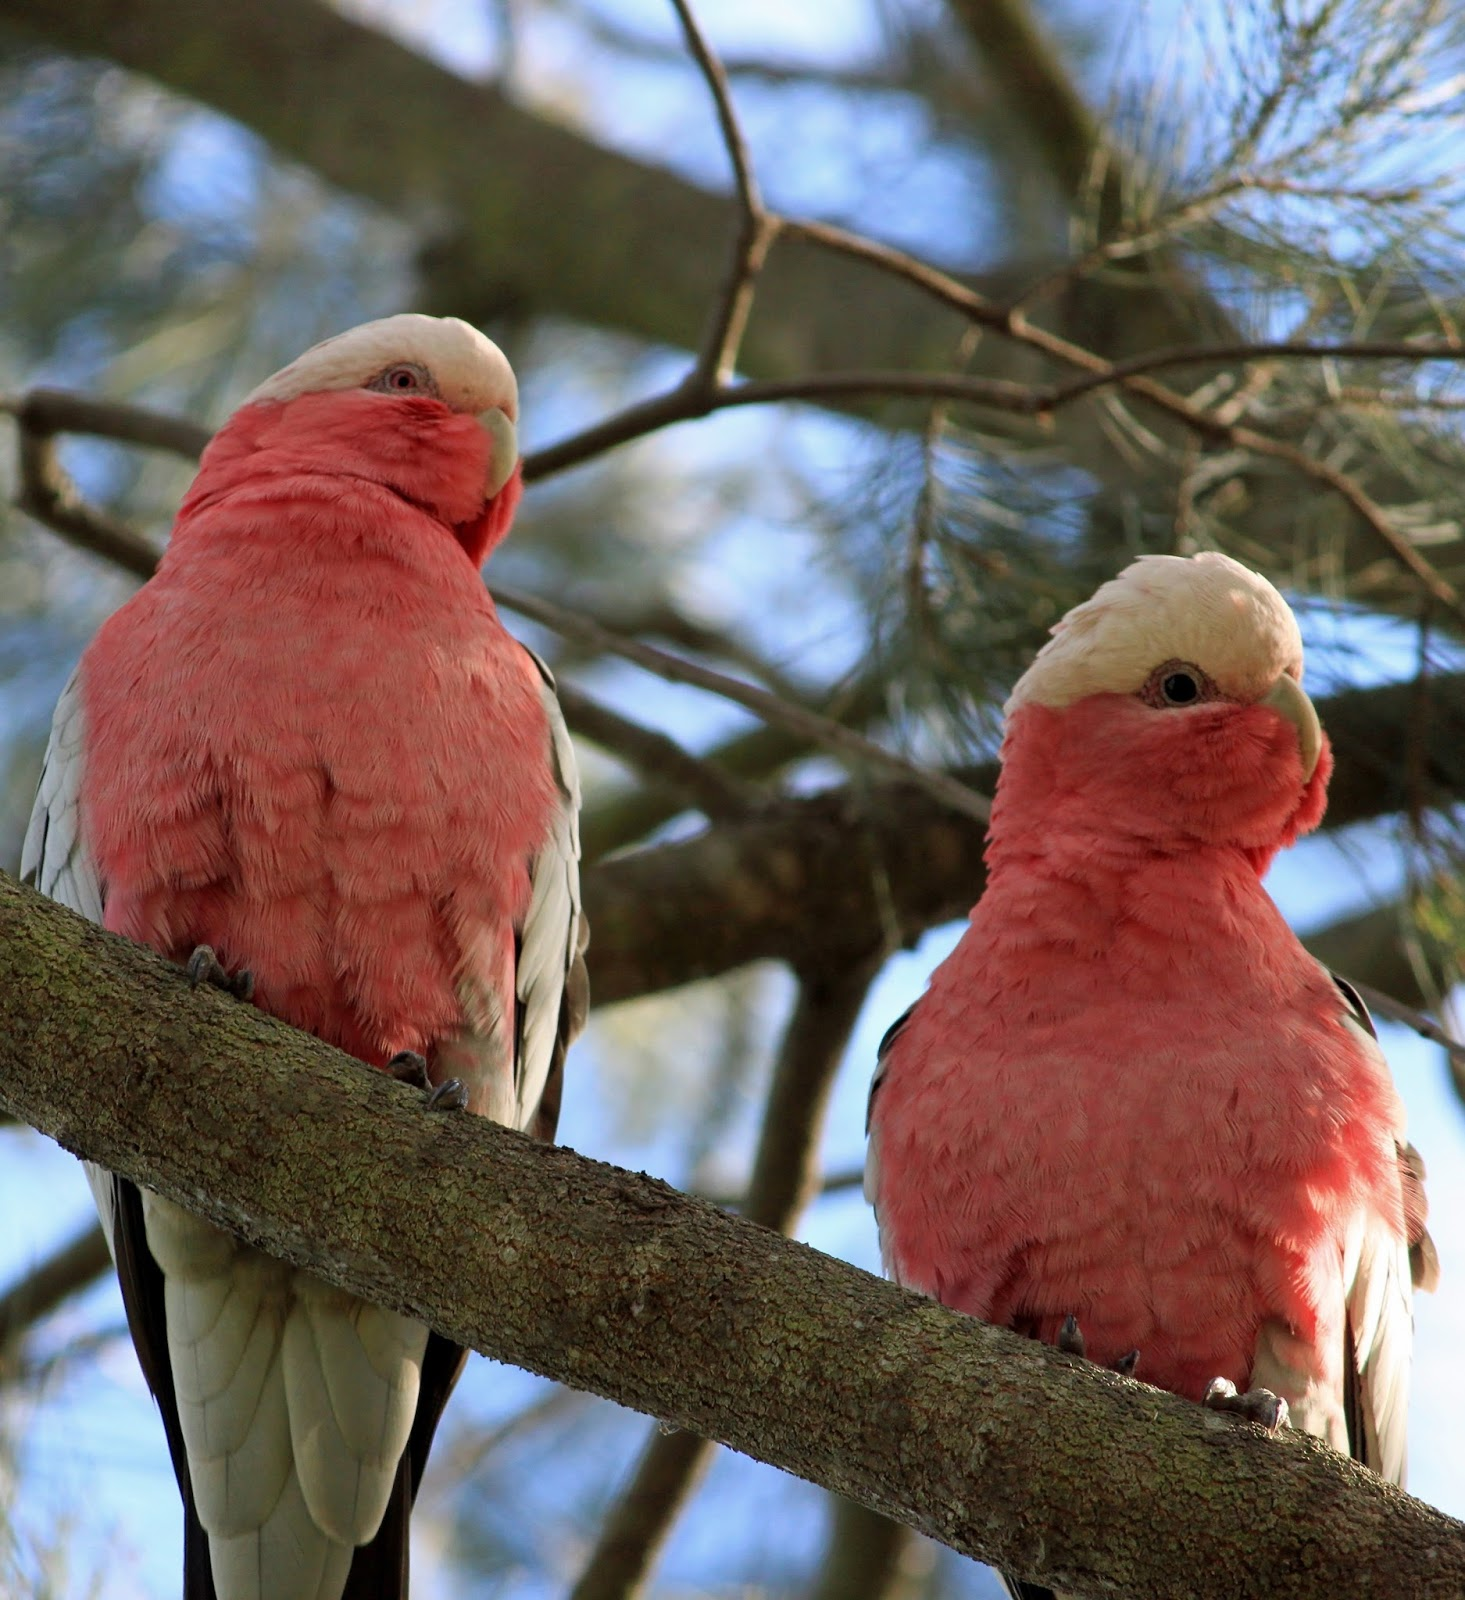 Picture of a pair of rose-breasted cockatoo or galah.